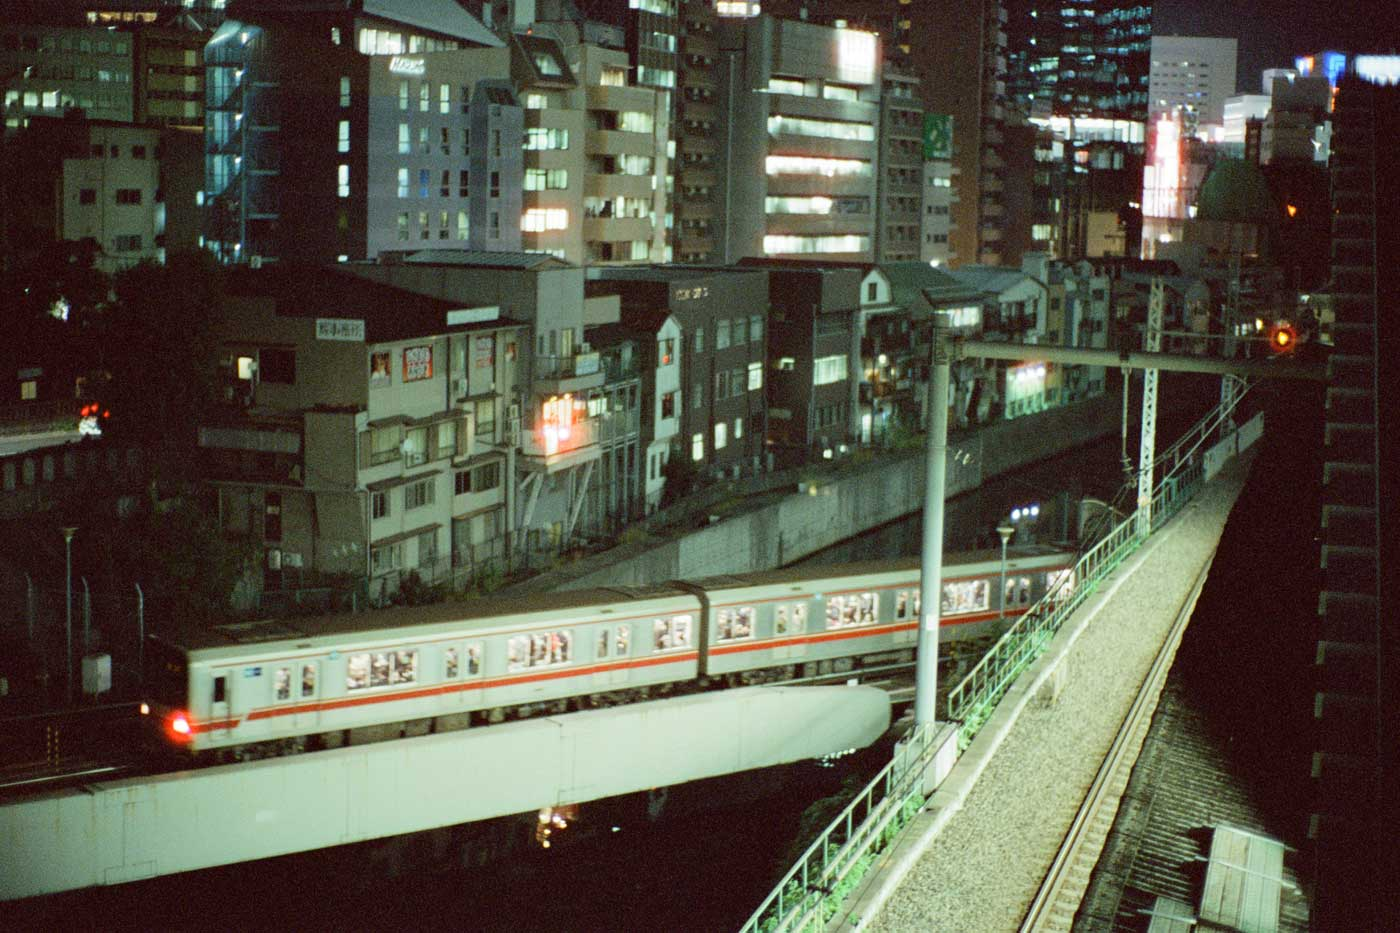 portfolio-we-have-seen-better-days-tahusa-japan-tokyo-street-project-blog-photography-film-Cinetsill-800t-noctilux-50mm-f1-1.0-v4-e60-near-akihabara-jr-rail-train-blade-runner-loneliness